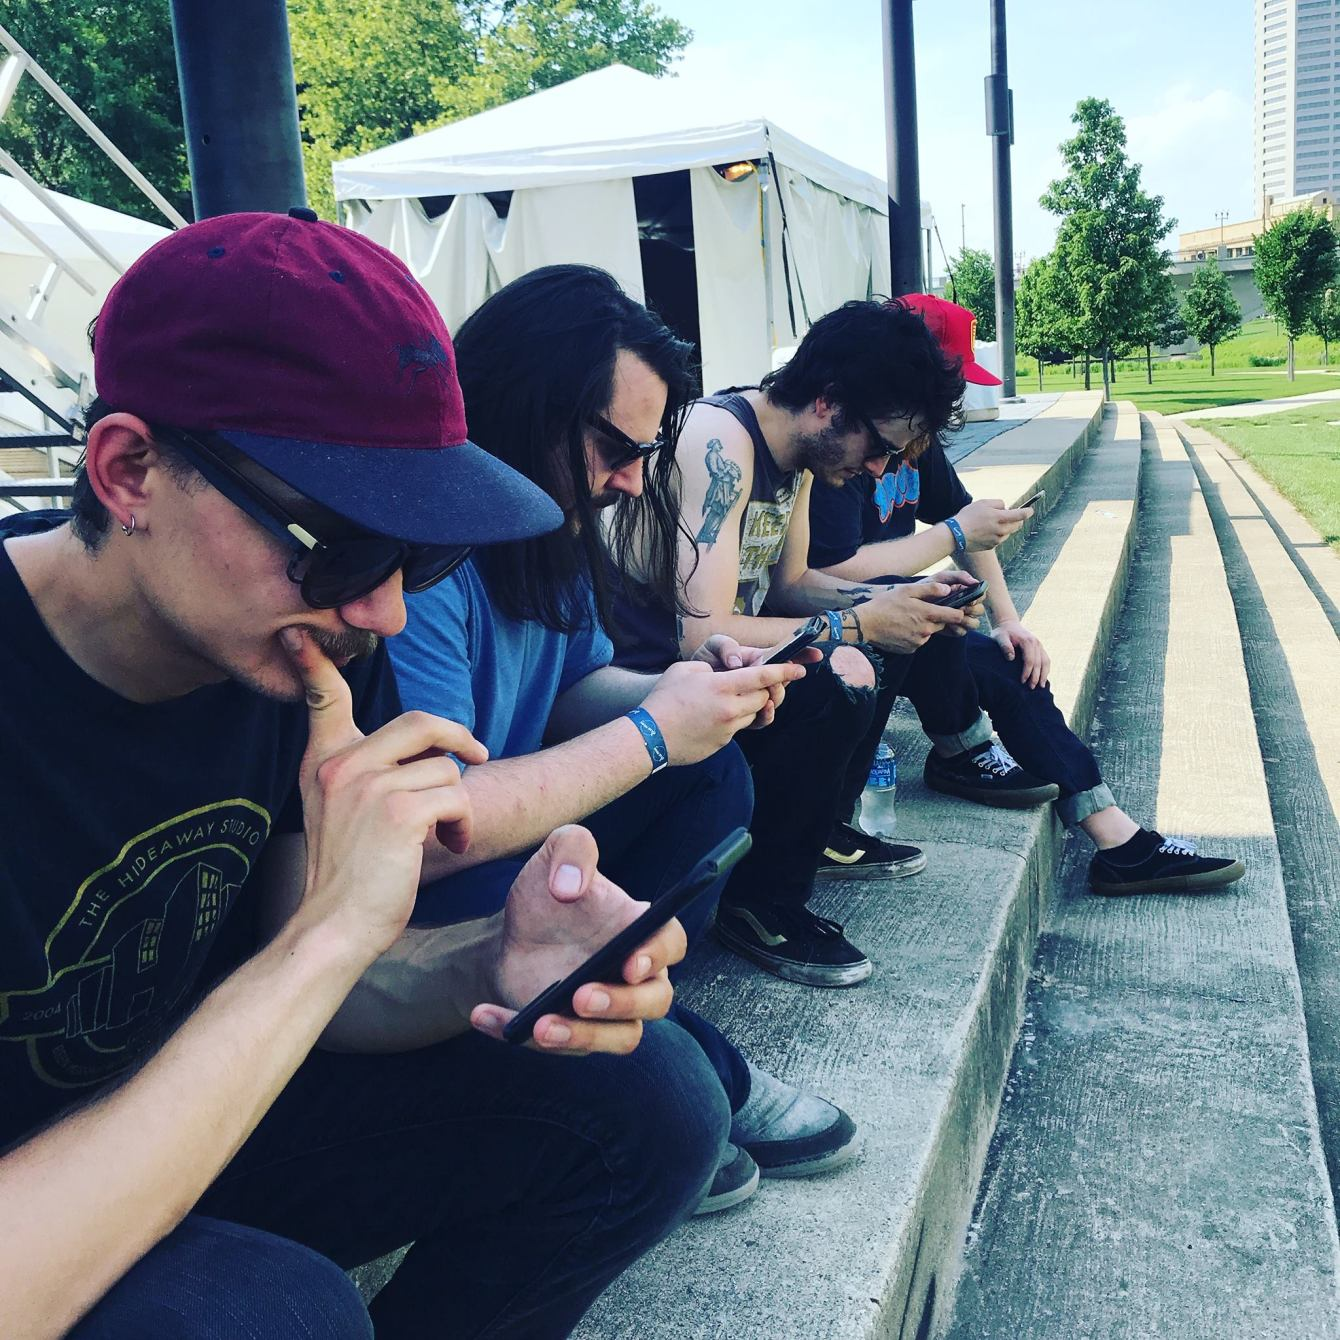 4 members of Minneapolis indie rock band Beasthead look at their phones while sitting in a row on some bleachers